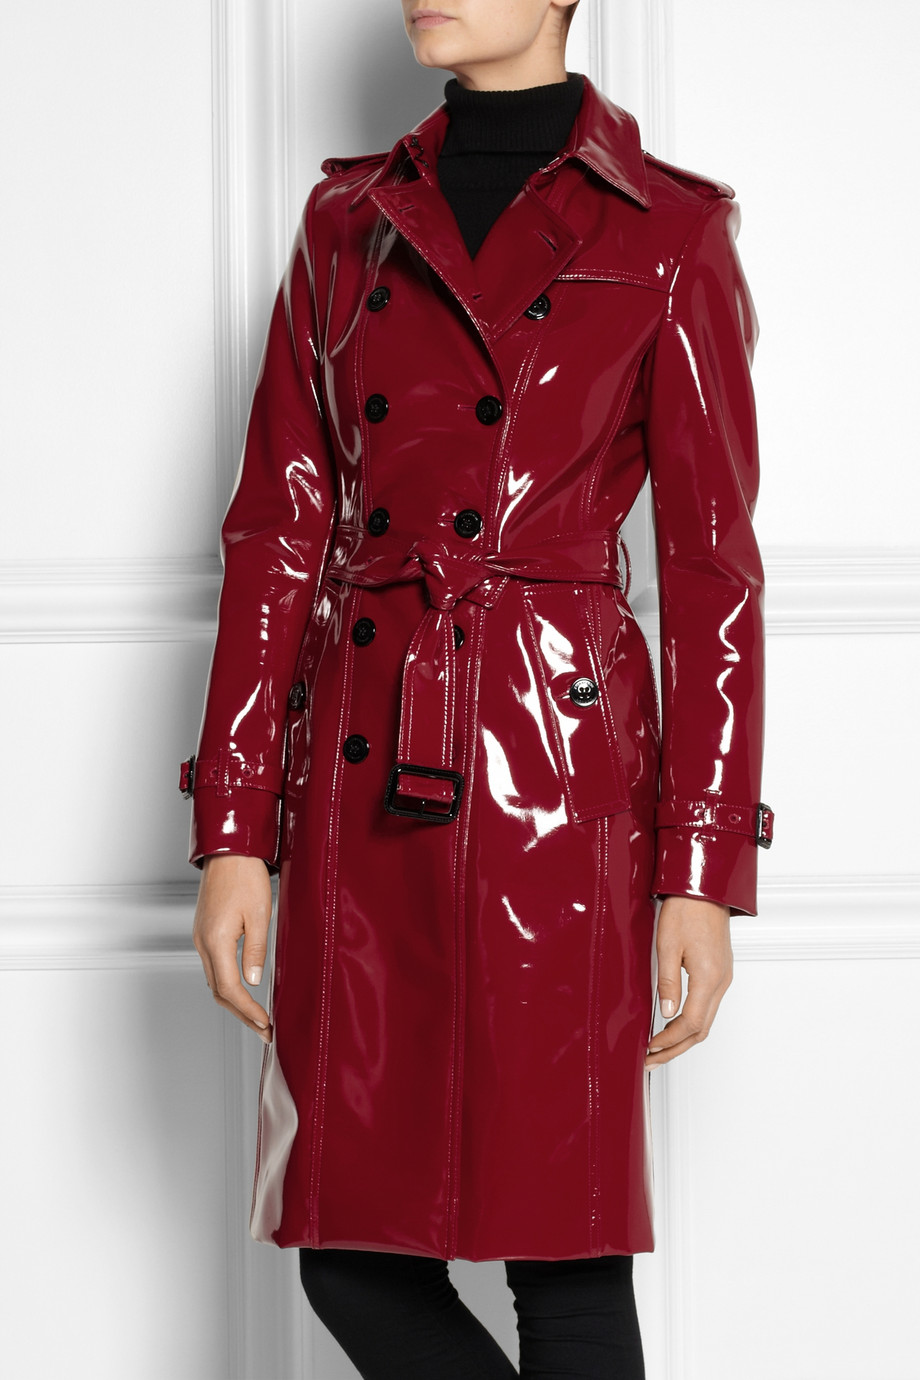 lyst burberry glossed vinyl trench coat in red. Black Bedroom Furniture Sets. Home Design Ideas